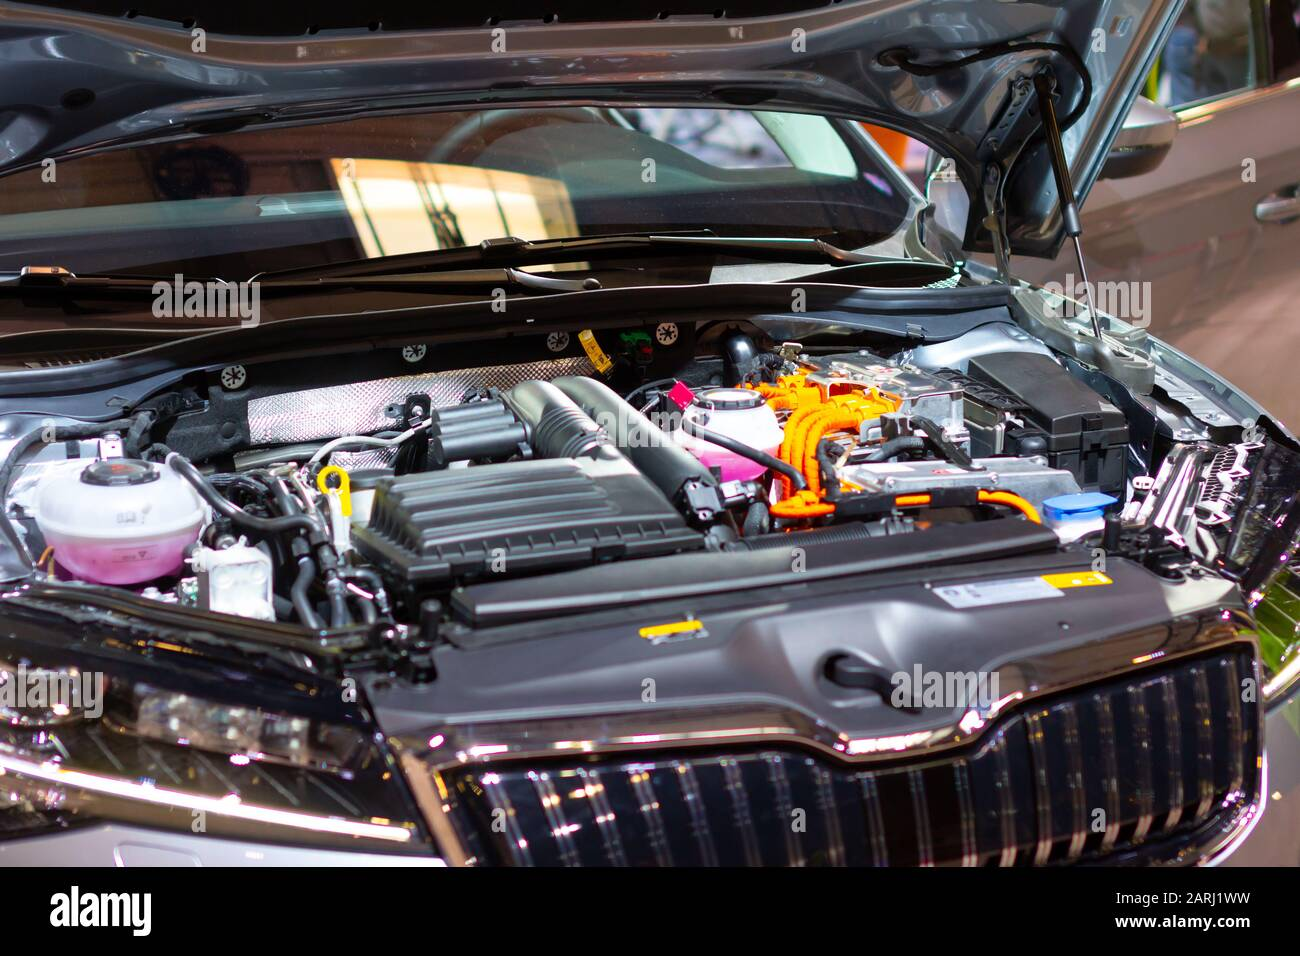 Under The Hood Of Plug In Hybrid Skoda Superb Iv Detail Of Electric Car Engine Prague Czechia November 2019 Stock Photo Alamy